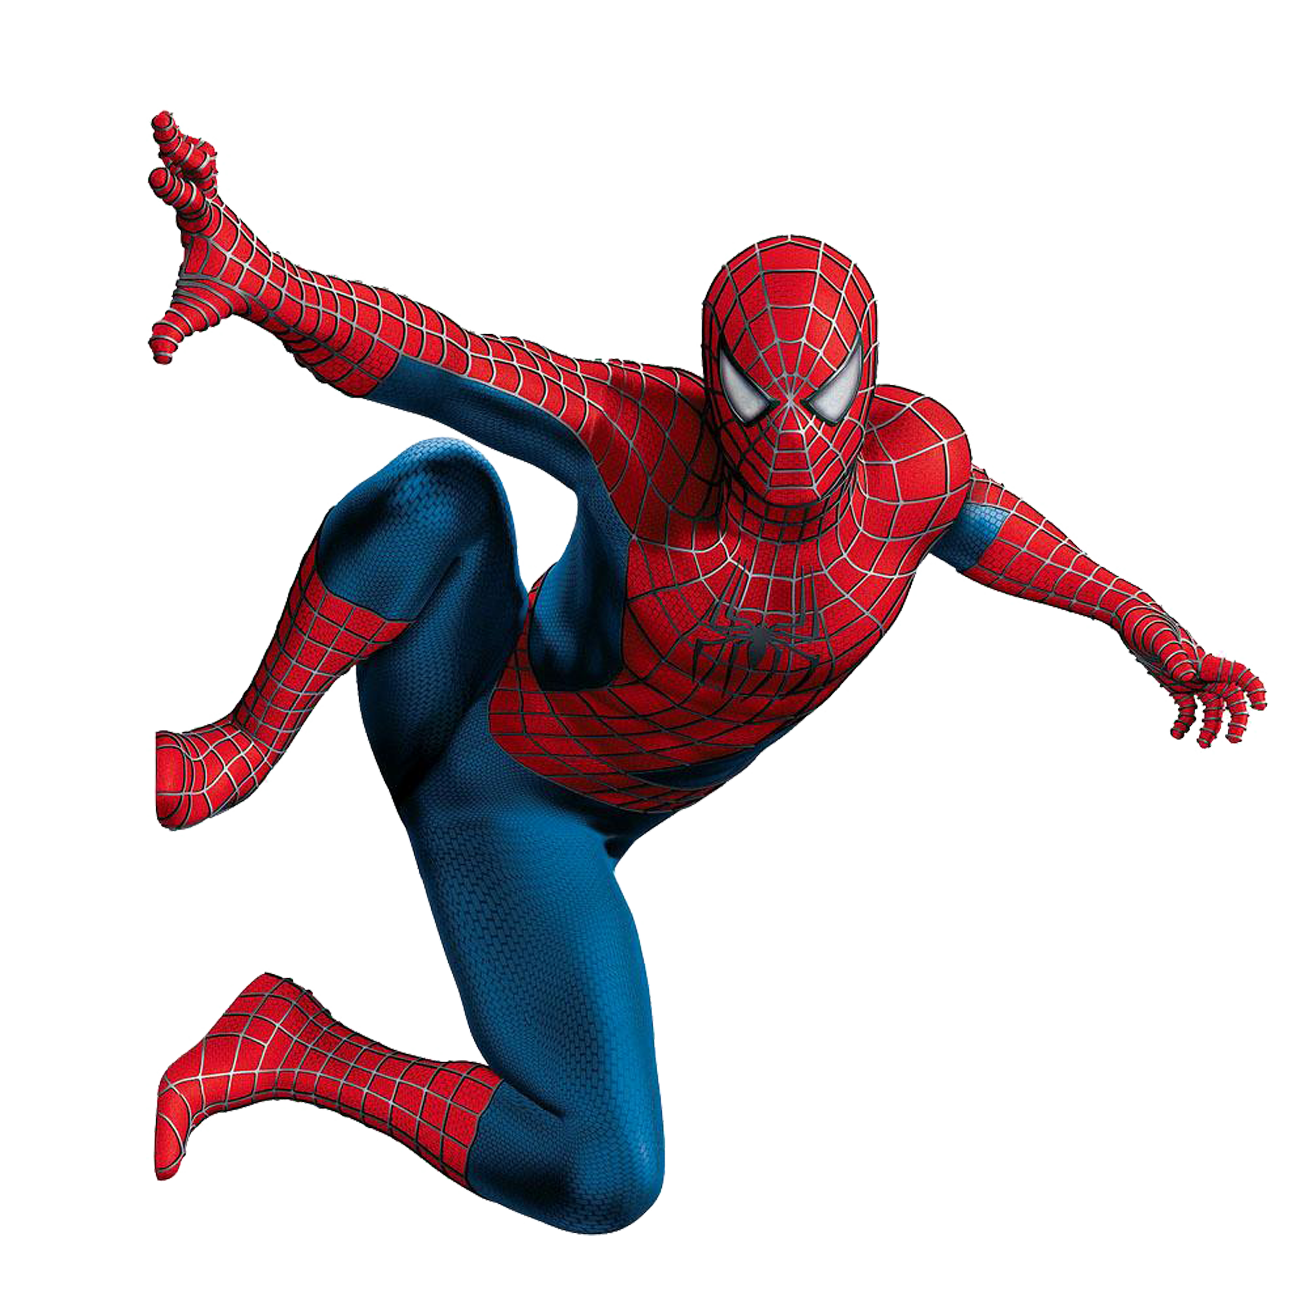 Spiderman climbing wall png Images